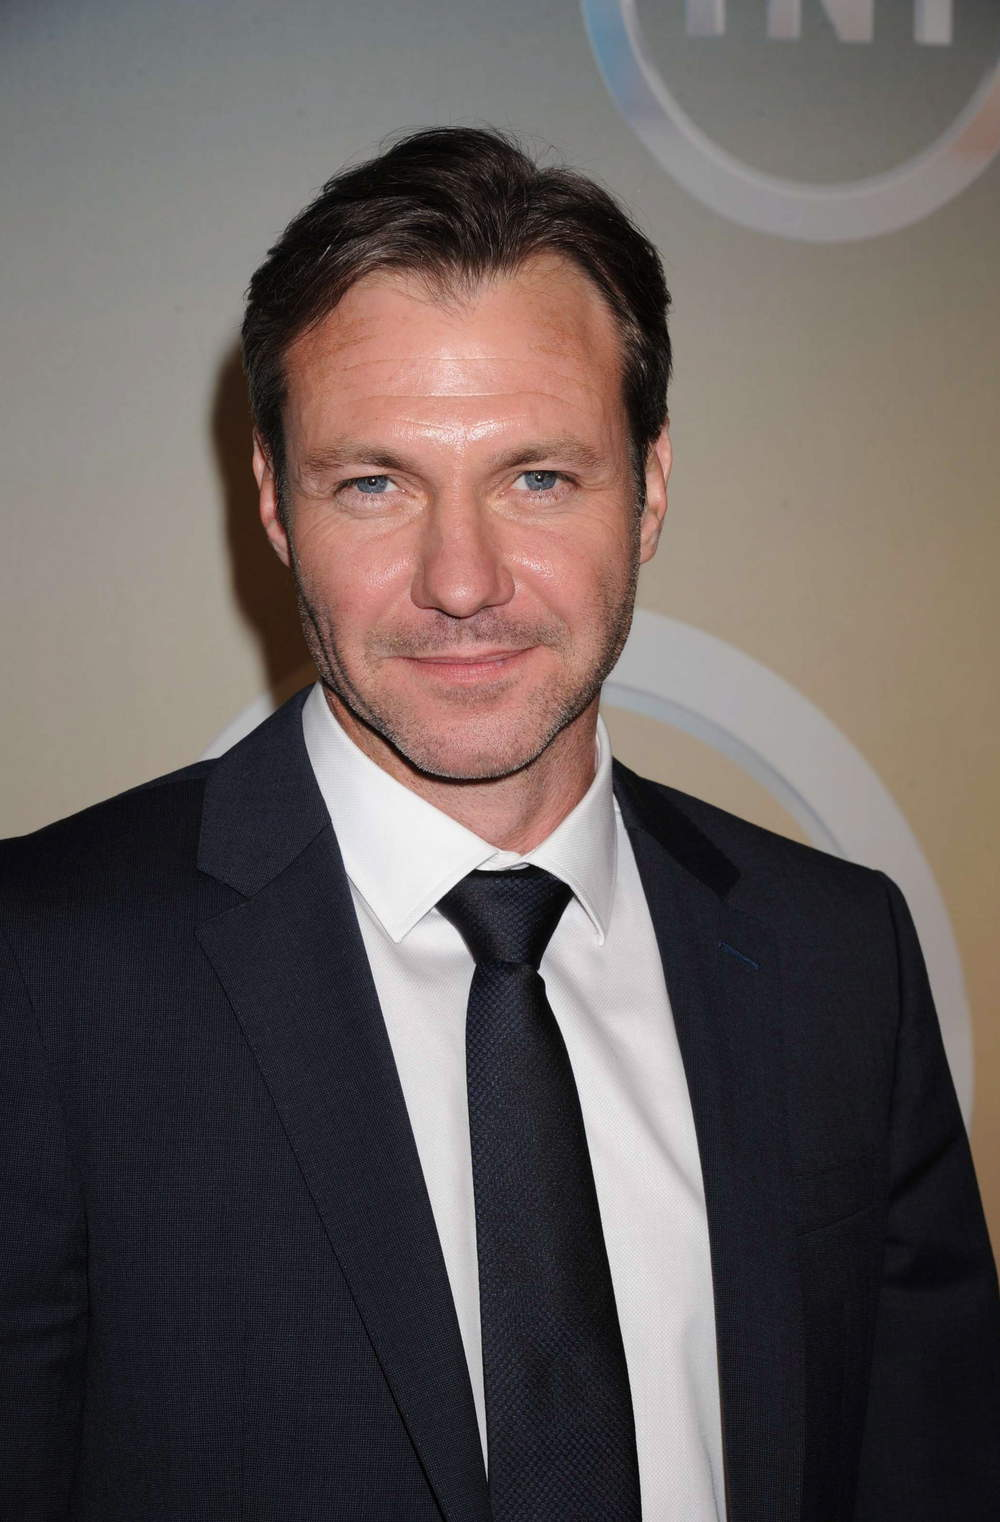 Chris Vance is Non